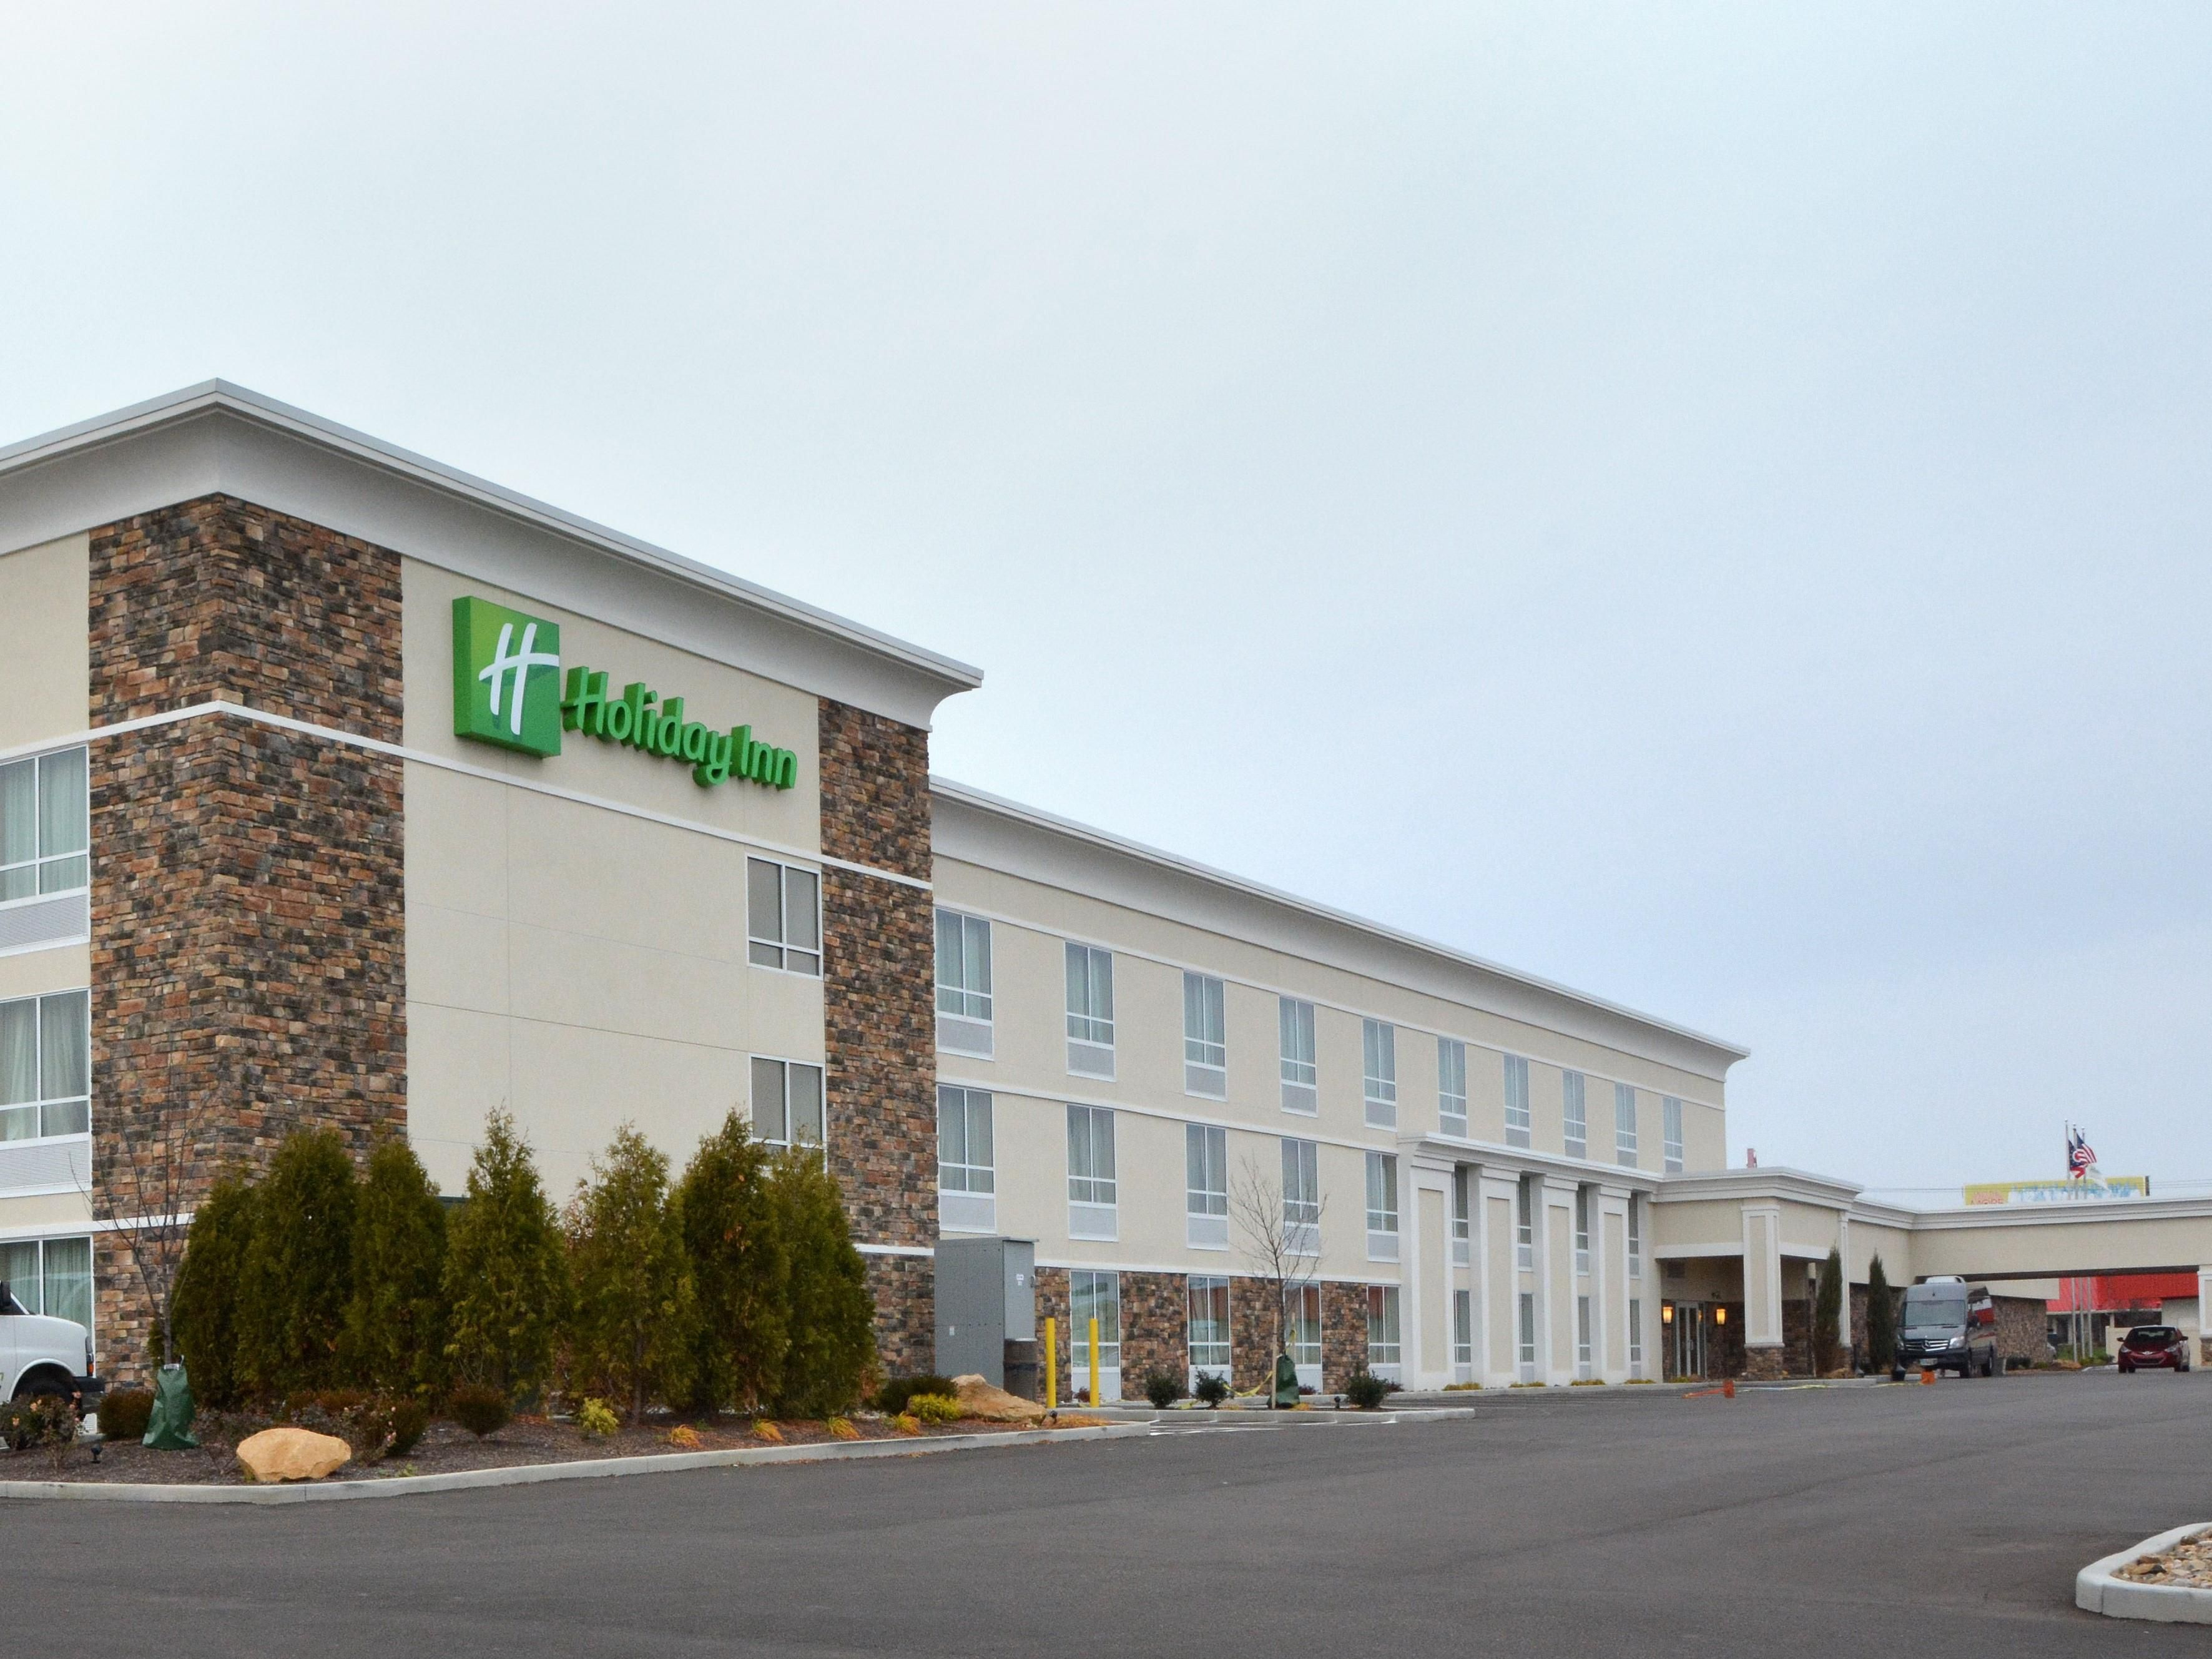 Newly Renovated Holiday Inn Exterior